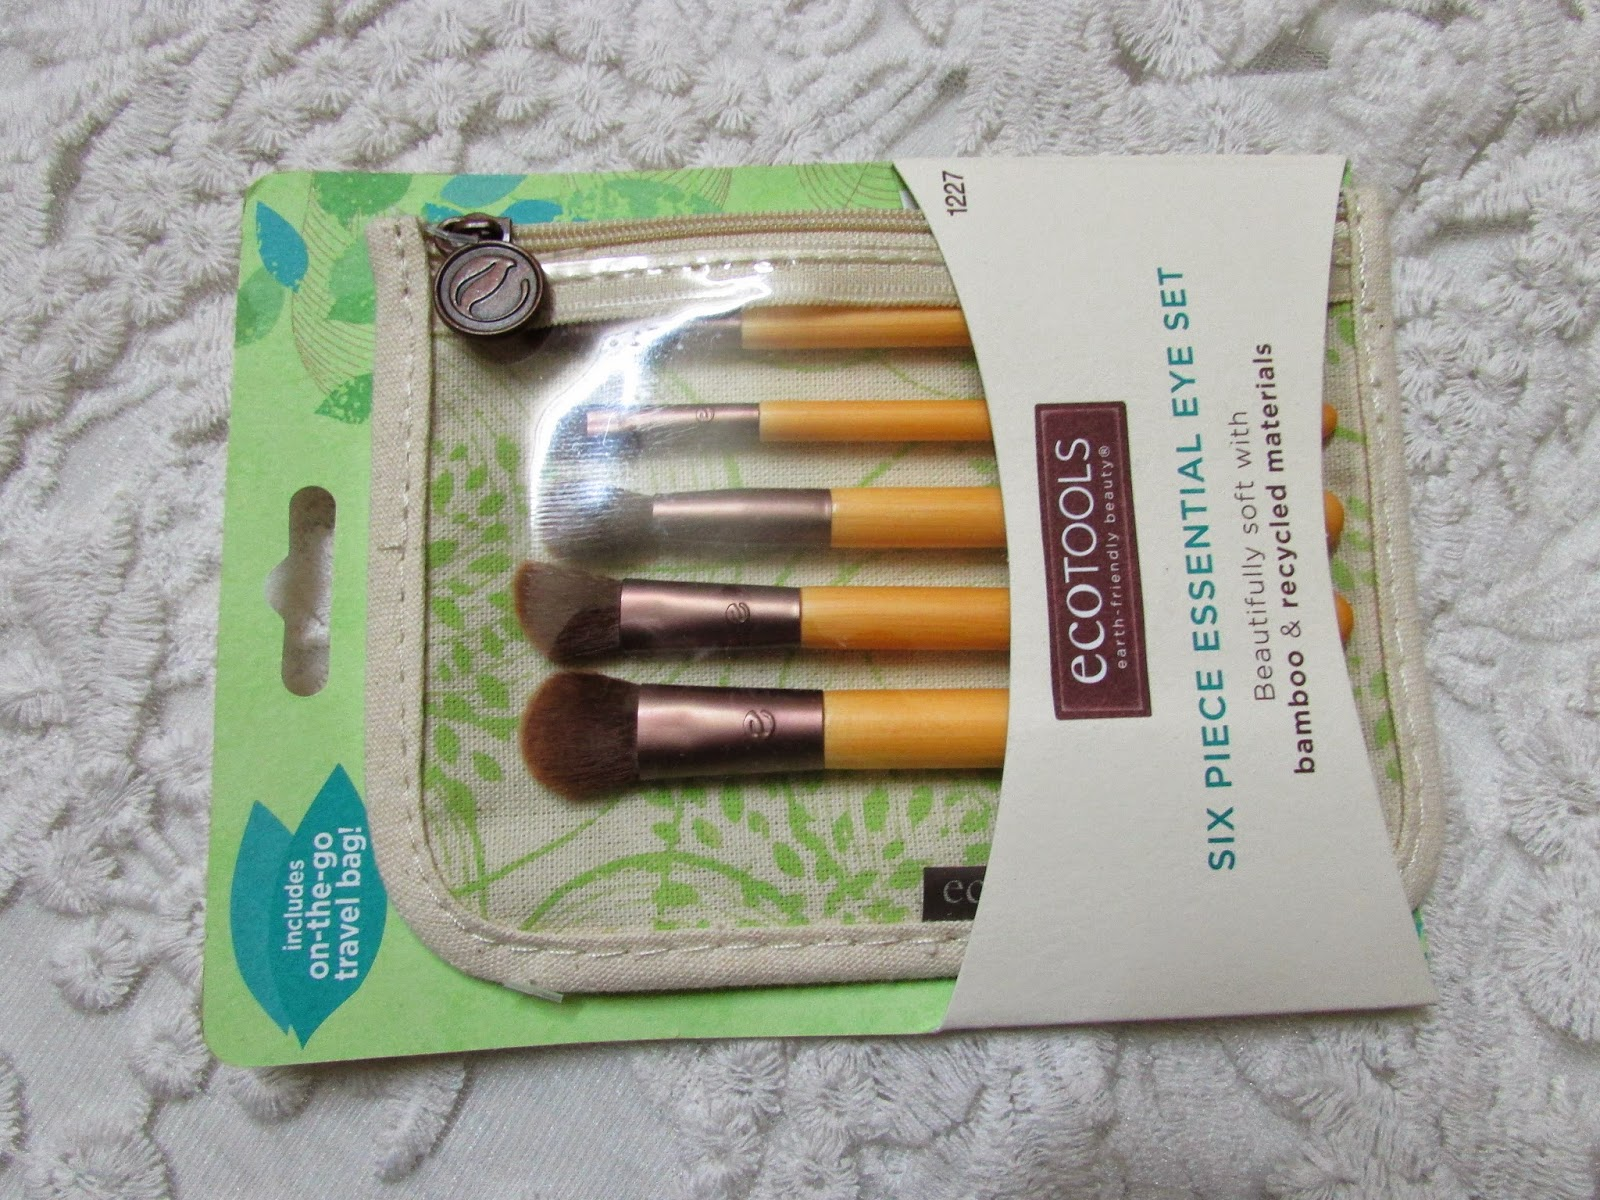 Real Techniques by Samantha Chapman, Your Base/Flawless, Core Collection, Real Techniques by Samantha Chapman, Your Eyes, Enhanced, Starter Set , Real Techniques by Samantha Chapman, Your Finish/Perfected, Blush Brush , Real Techniques by Samantha Chapman, Your Eyes/Enhanced, Shading Brush , Real Techniques by Samantha Chapman, Miracle Complexion Sponge, EcoTools, Eye Enhancing Duo Set , EcoTools, Six Piece Essential Eye Set, E.L.F. Cosmetics, Contouring Blush & Bronzing Powder, St Lucia, ihearb, ihearb haul, ihearb review, iheard brush, best place to buy brush, cheapest place to buy brushes, best place to buy makeup brushes, best place to buy real techniques brushes online, best place to buy eco tools brushes online, elf online